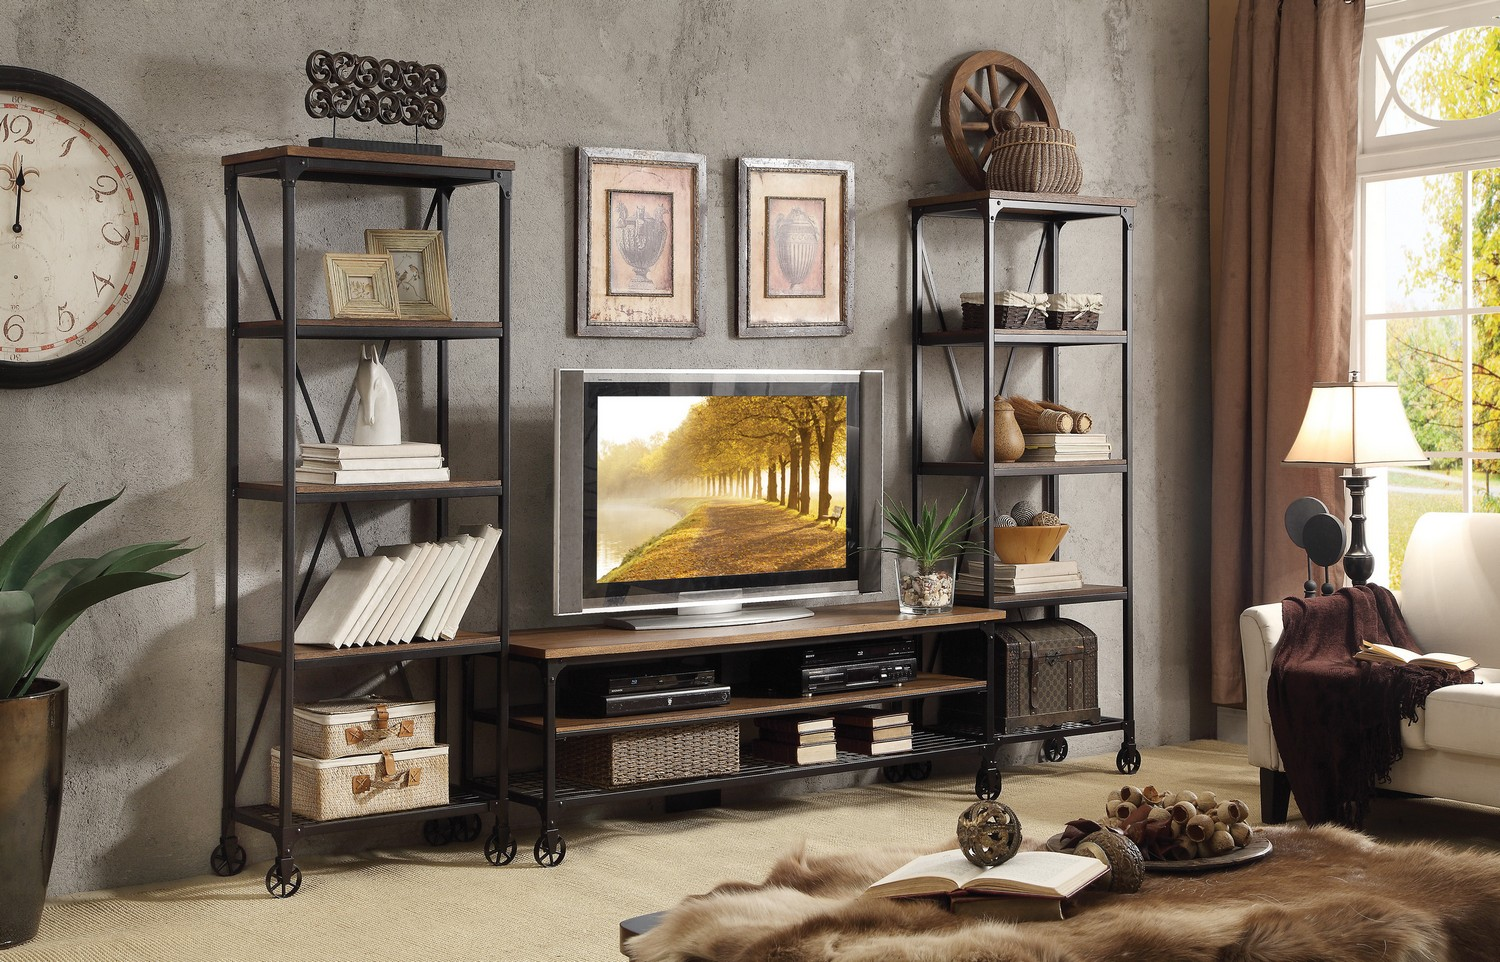 Homelegance Millwood Entertainment Center Set - Distressed ash veneer